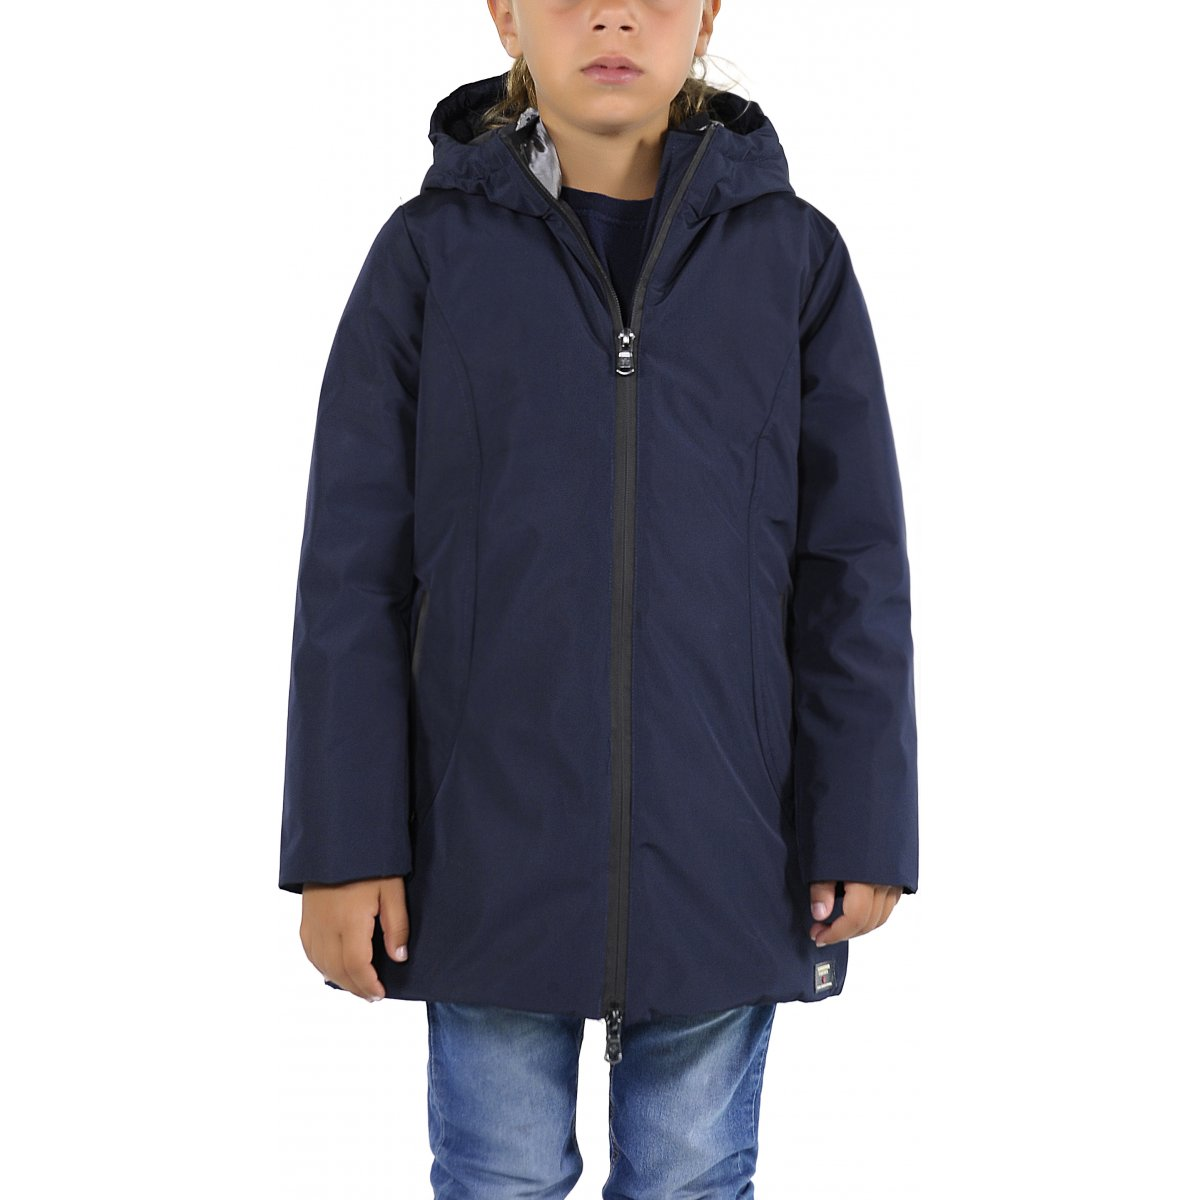 the latest e466d 5fbe6 GIACCA KID YONKTON LONG - Eskimo & Parka Canadian Children